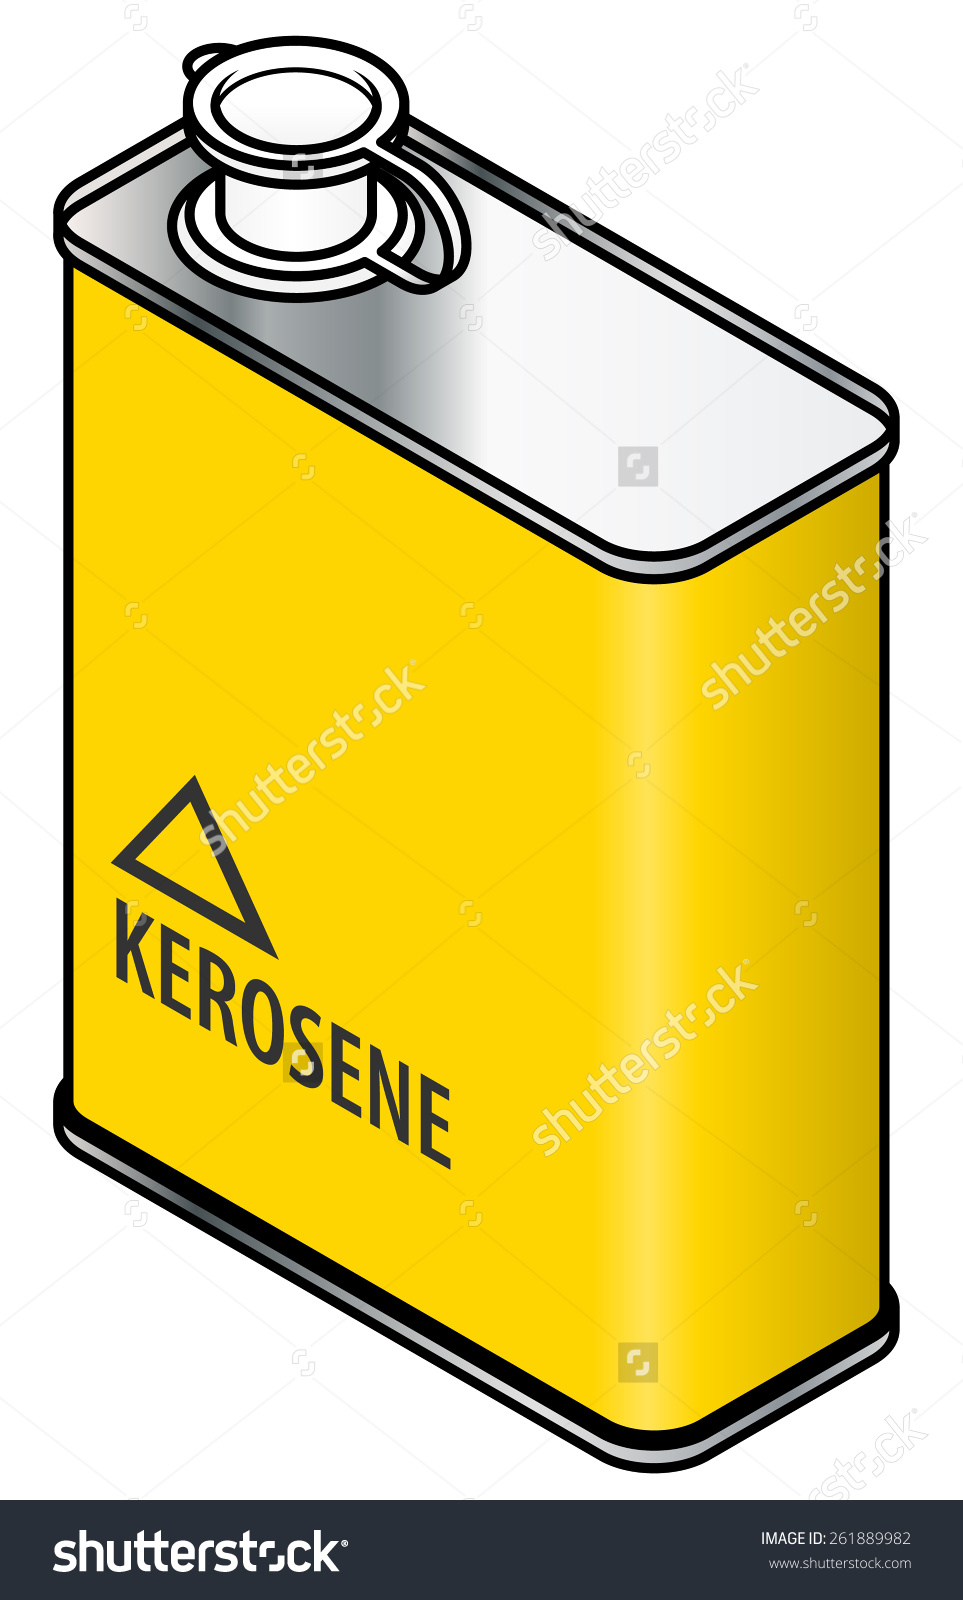 Yellow Rectangular Metal Tin Kerosene Stock Vector 261889982.